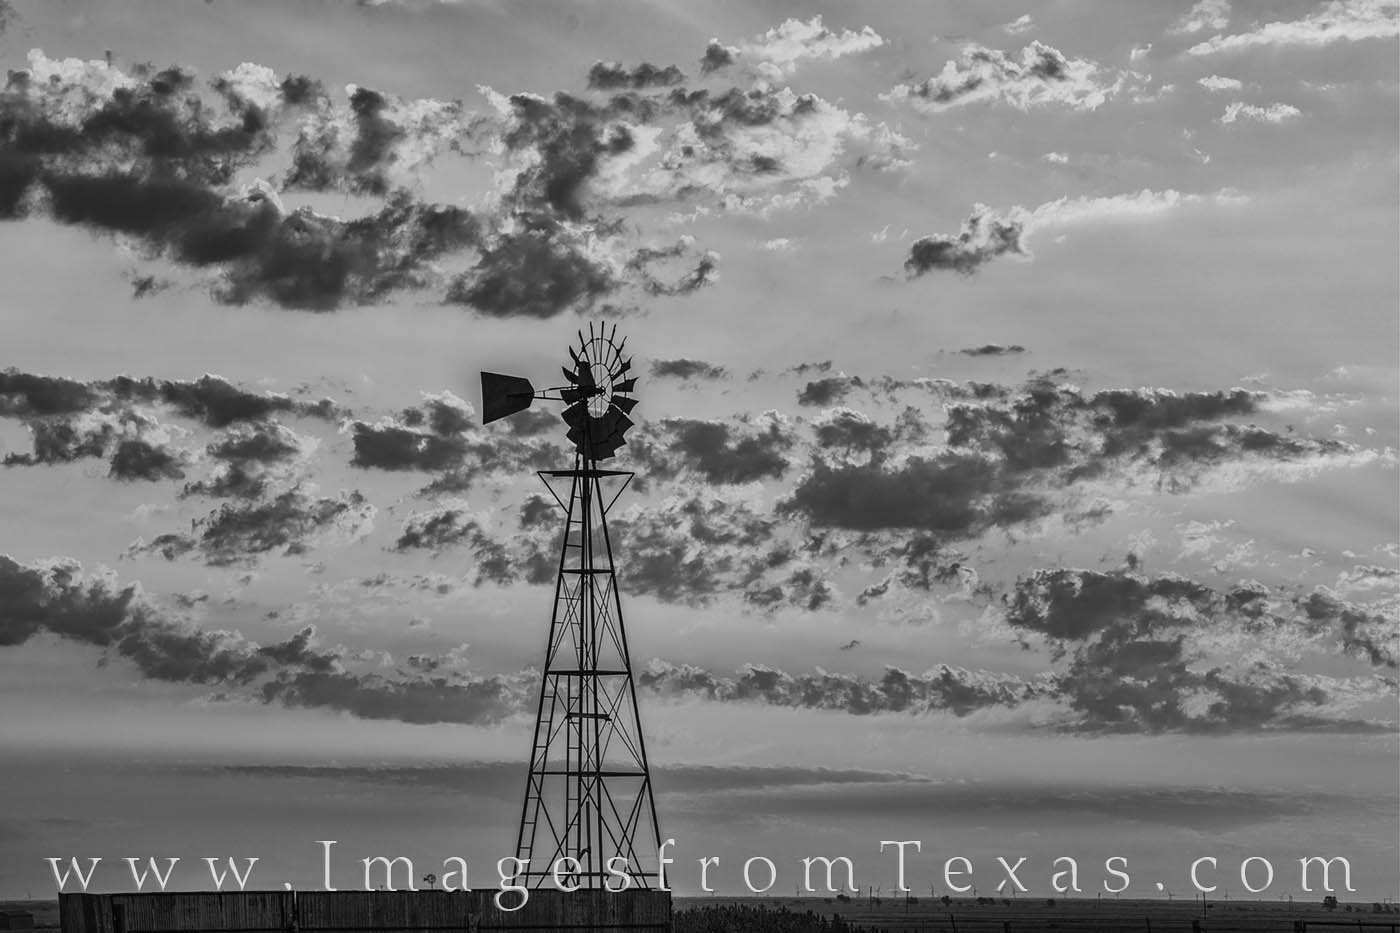 windmill, black and white, prints for sale, west texas, landscapes, amarillo, canyon, palo duro, morning, wall decor, photo